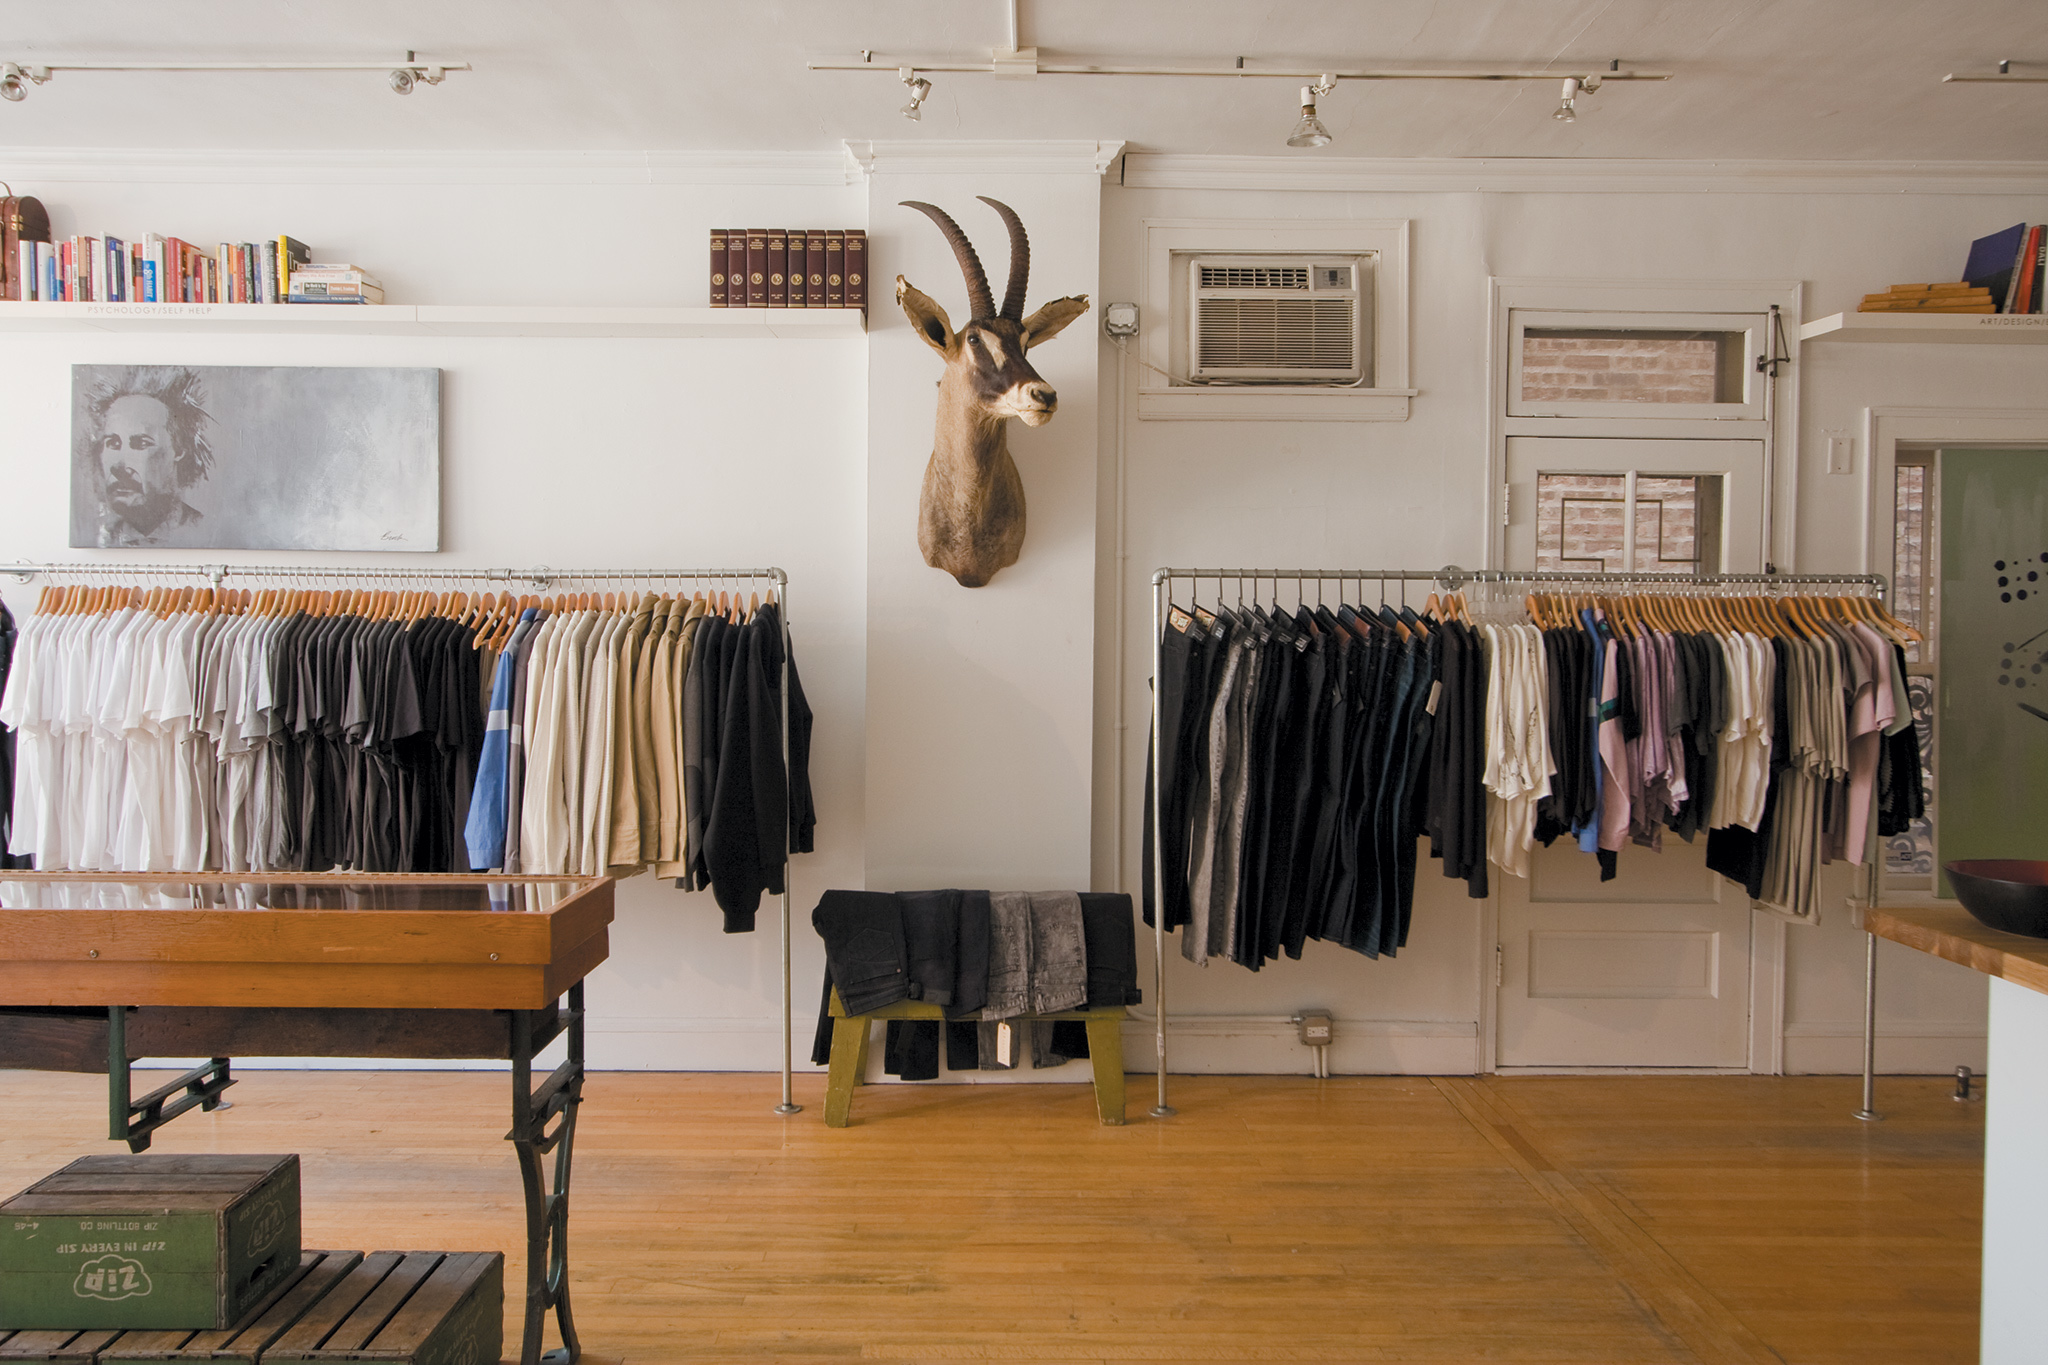 Best clothing stores in Chicago